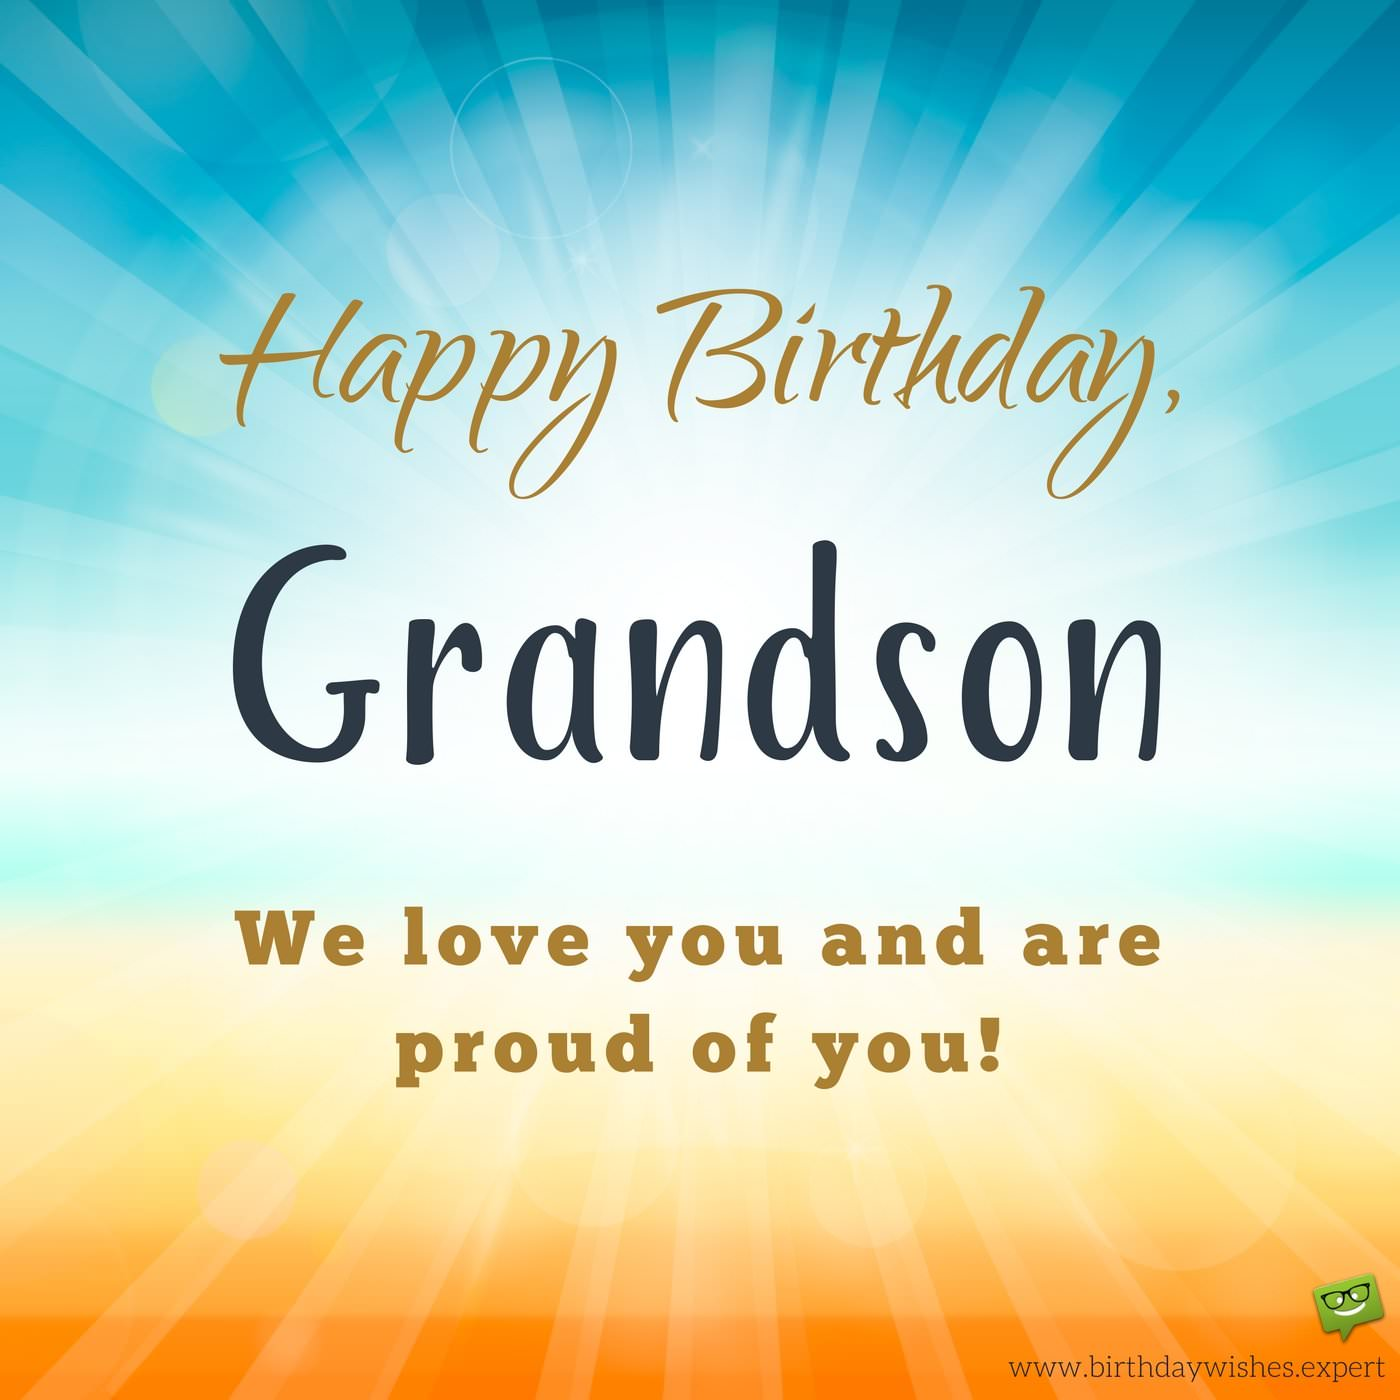 We Love You And Grandson Birthday Wishes